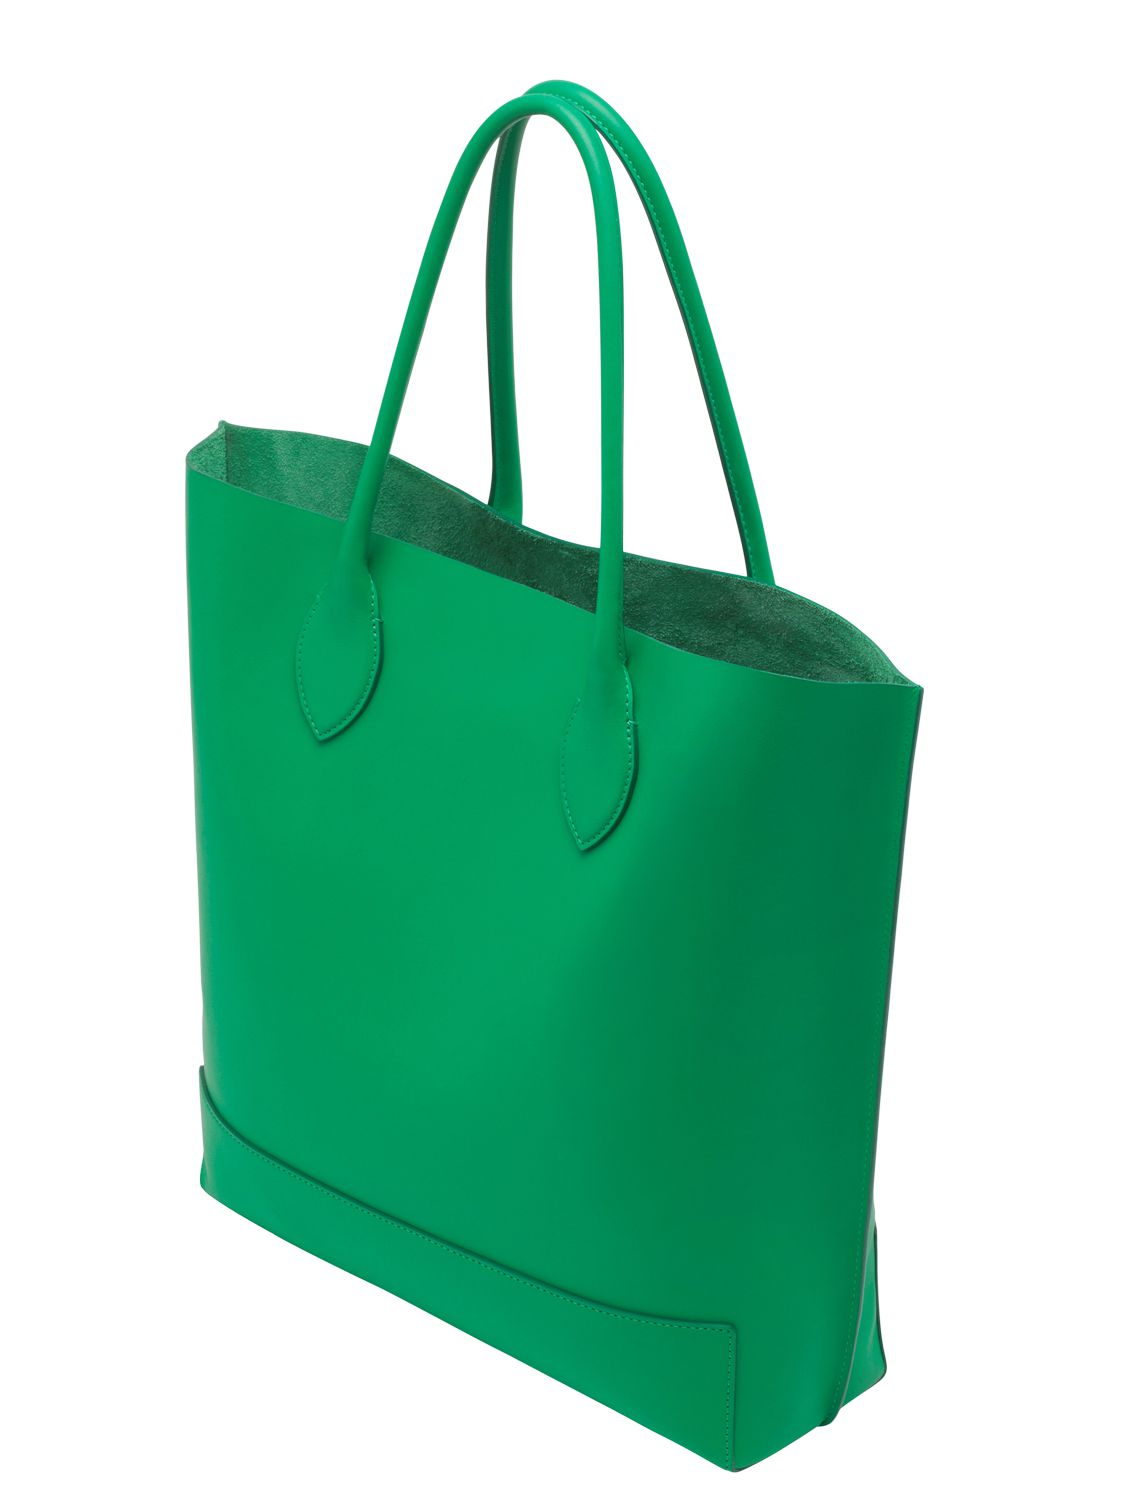 880ddc6db5 Mulberry Blossom Nappa Leather Tote Bag in Green - Lyst